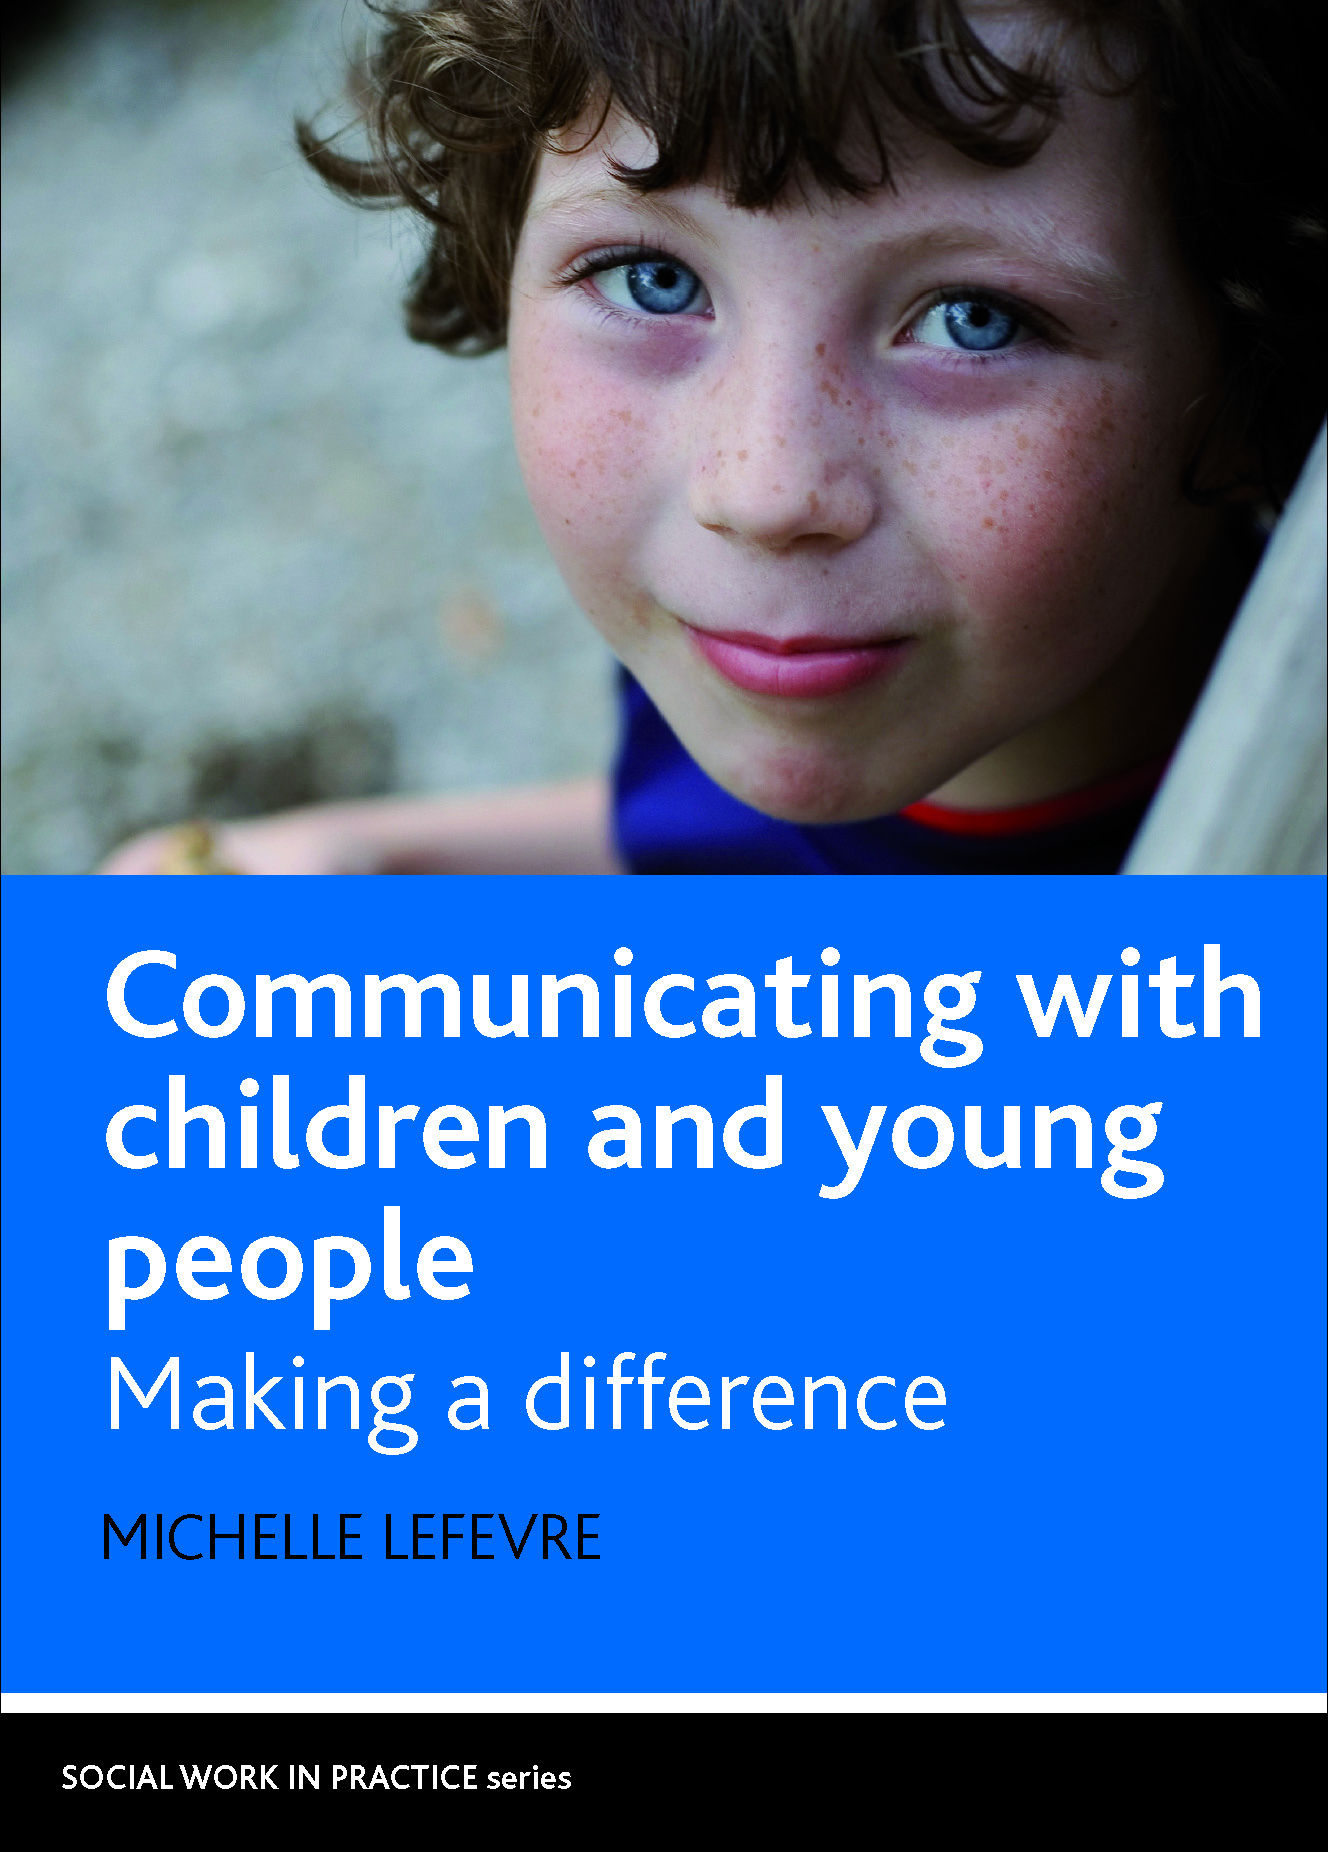 children and young people communicating essay Communication involves understanding people: their needs, skills, beliefs, values, societies and cultures, and that communication is a two-way process for sharing ideas and knowledge.